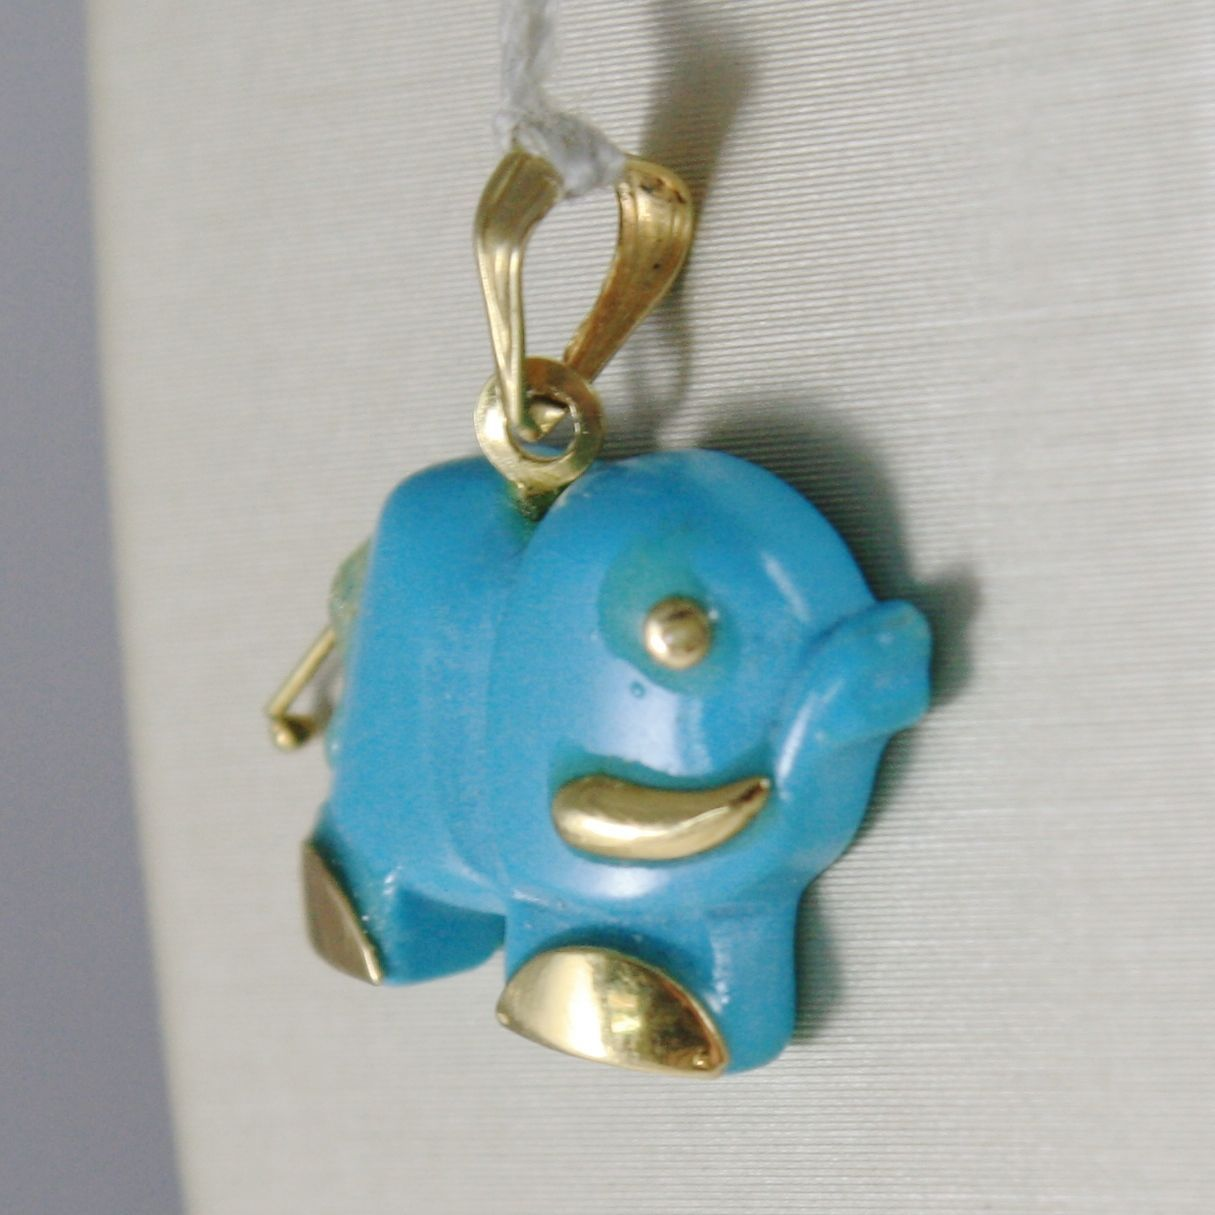 SOLID 18K YELLOW GOLD ELEPHANT PENDANT CHARM TURQUOISE, BLUE, MADE IN ITALY